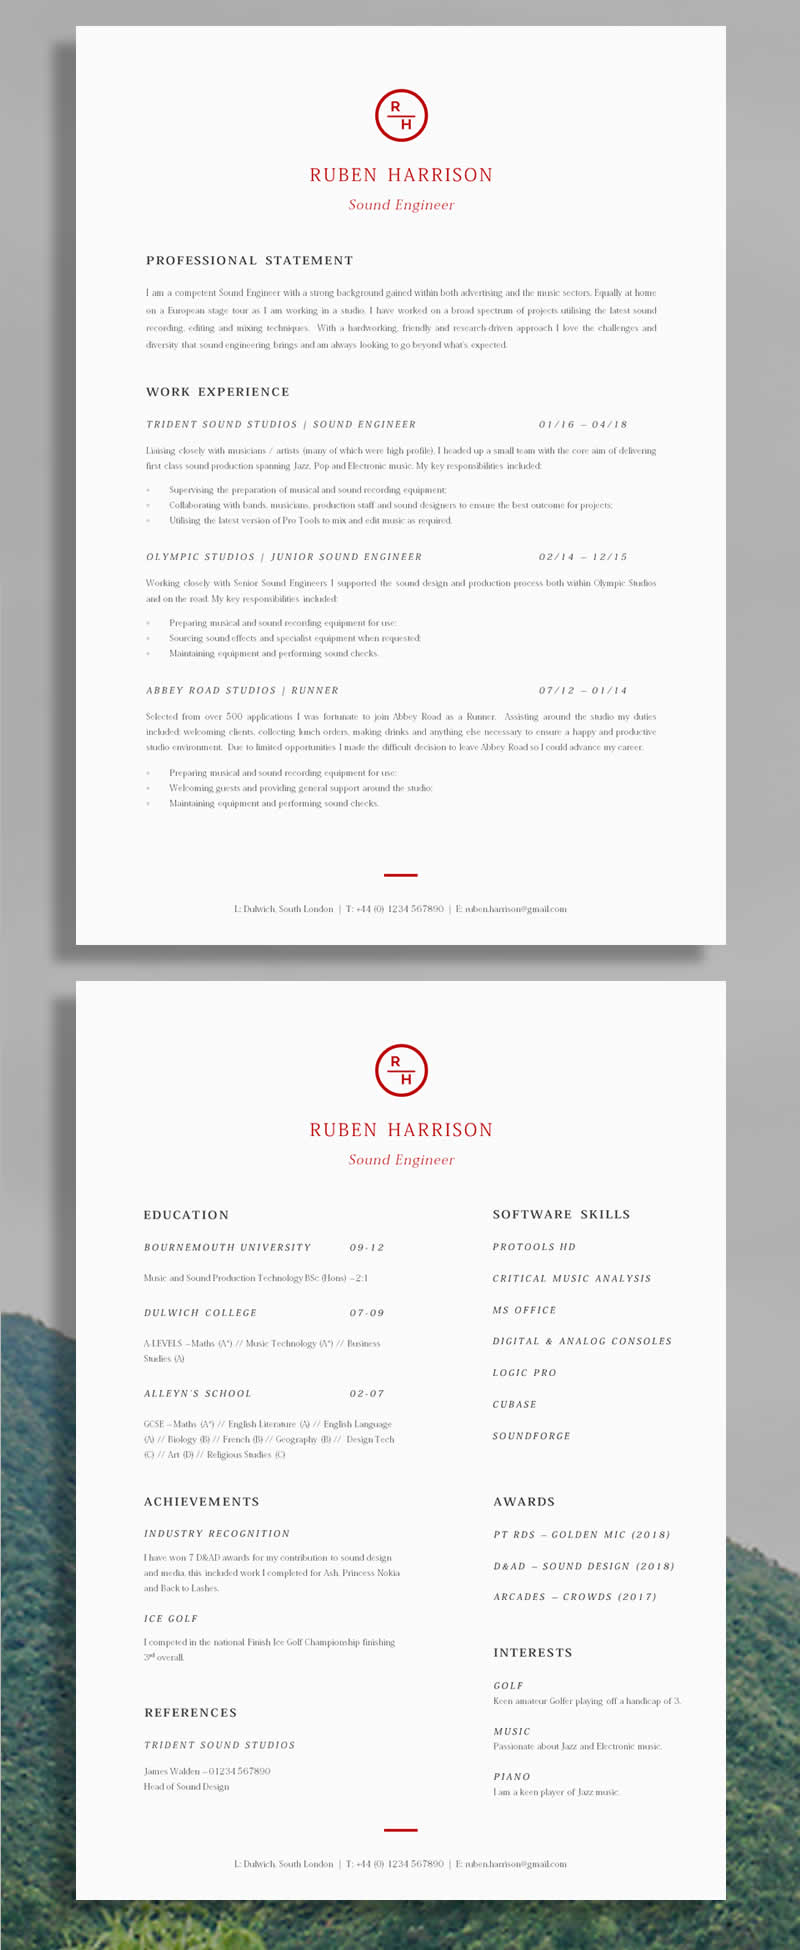 15 Superb Cv Examples To Get You Noticed Guru